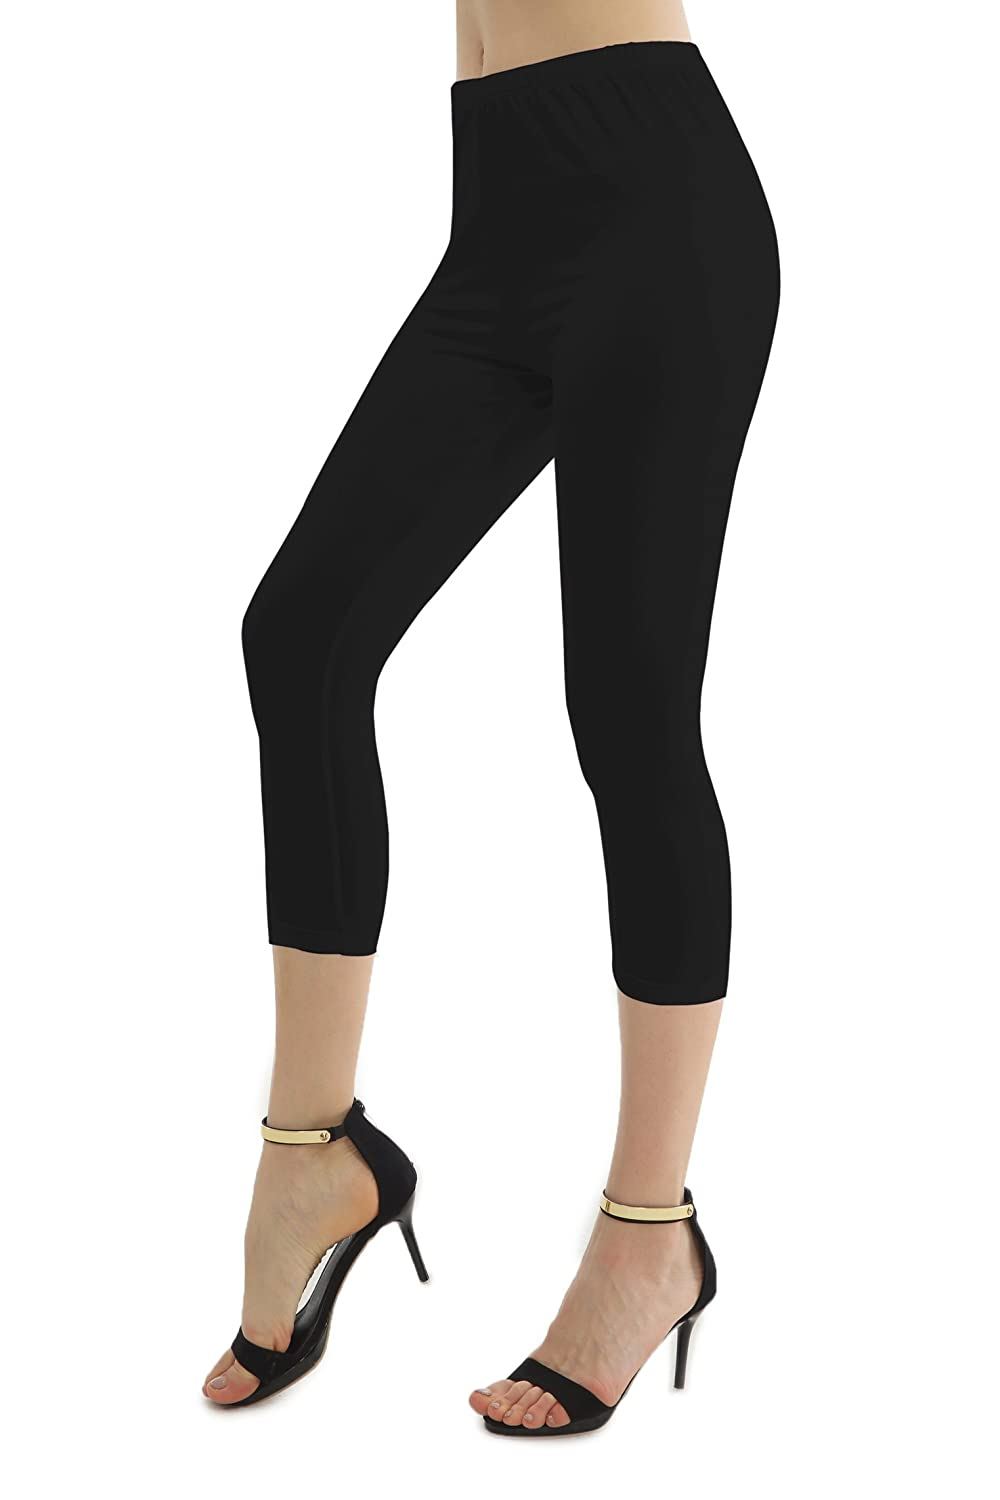 c8d98a5d3d11e Our high waisted womens fashion leggings are designed for a sleek and sexy  contour that provides a slimming effect on your ...